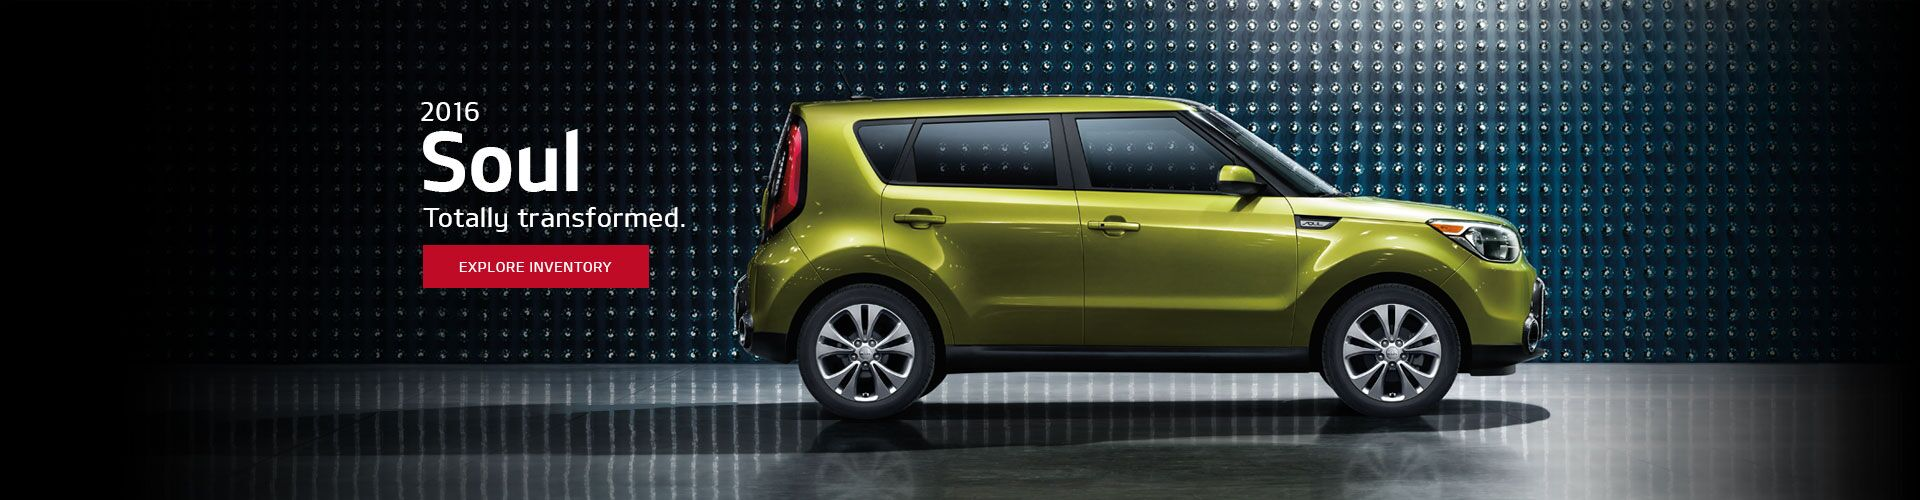 New Kia Soul at Kia of Auburn